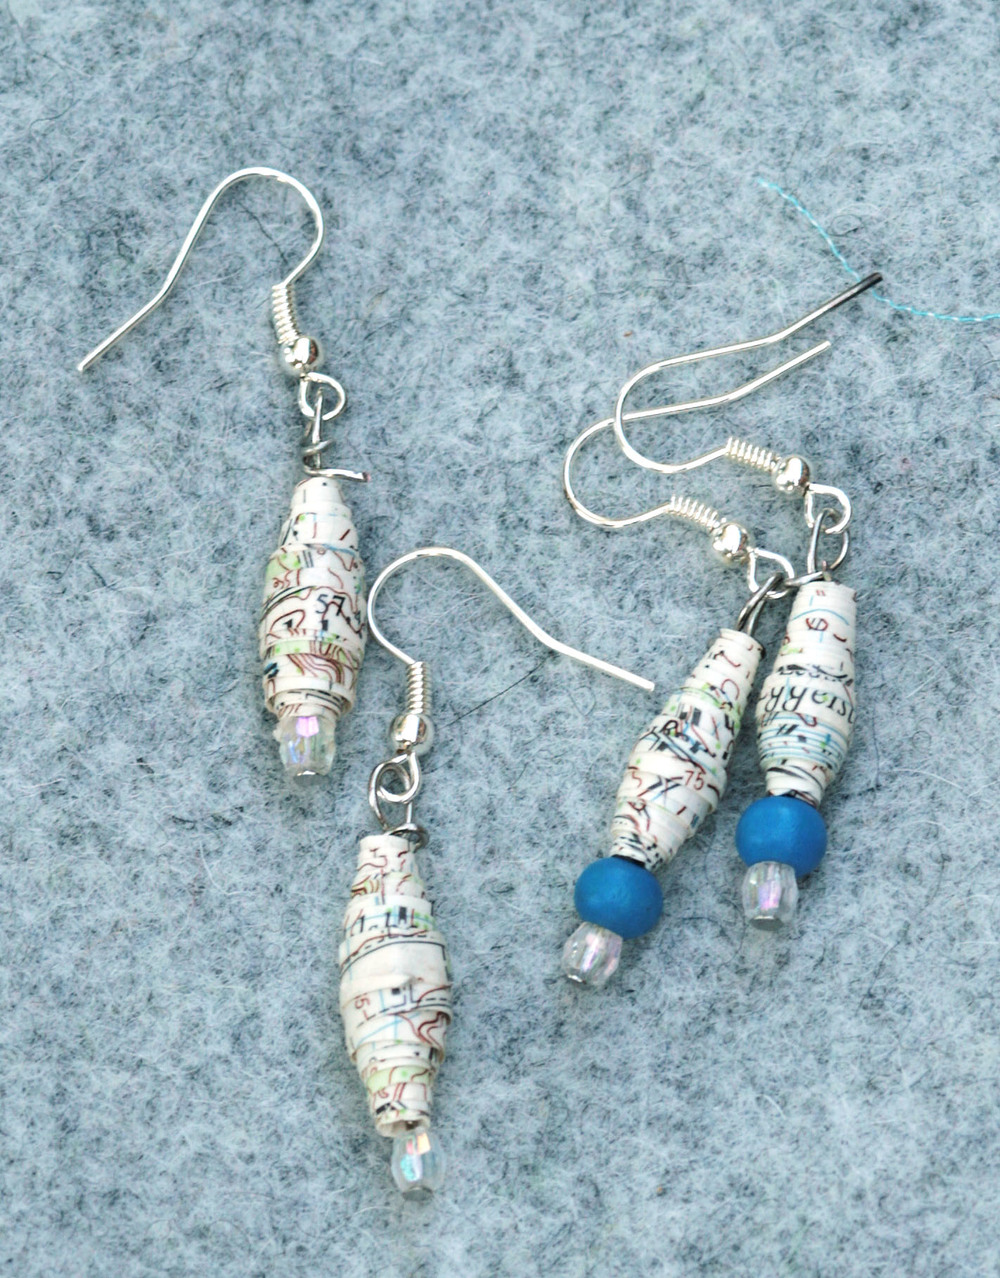 Earrings made of out of date maps.